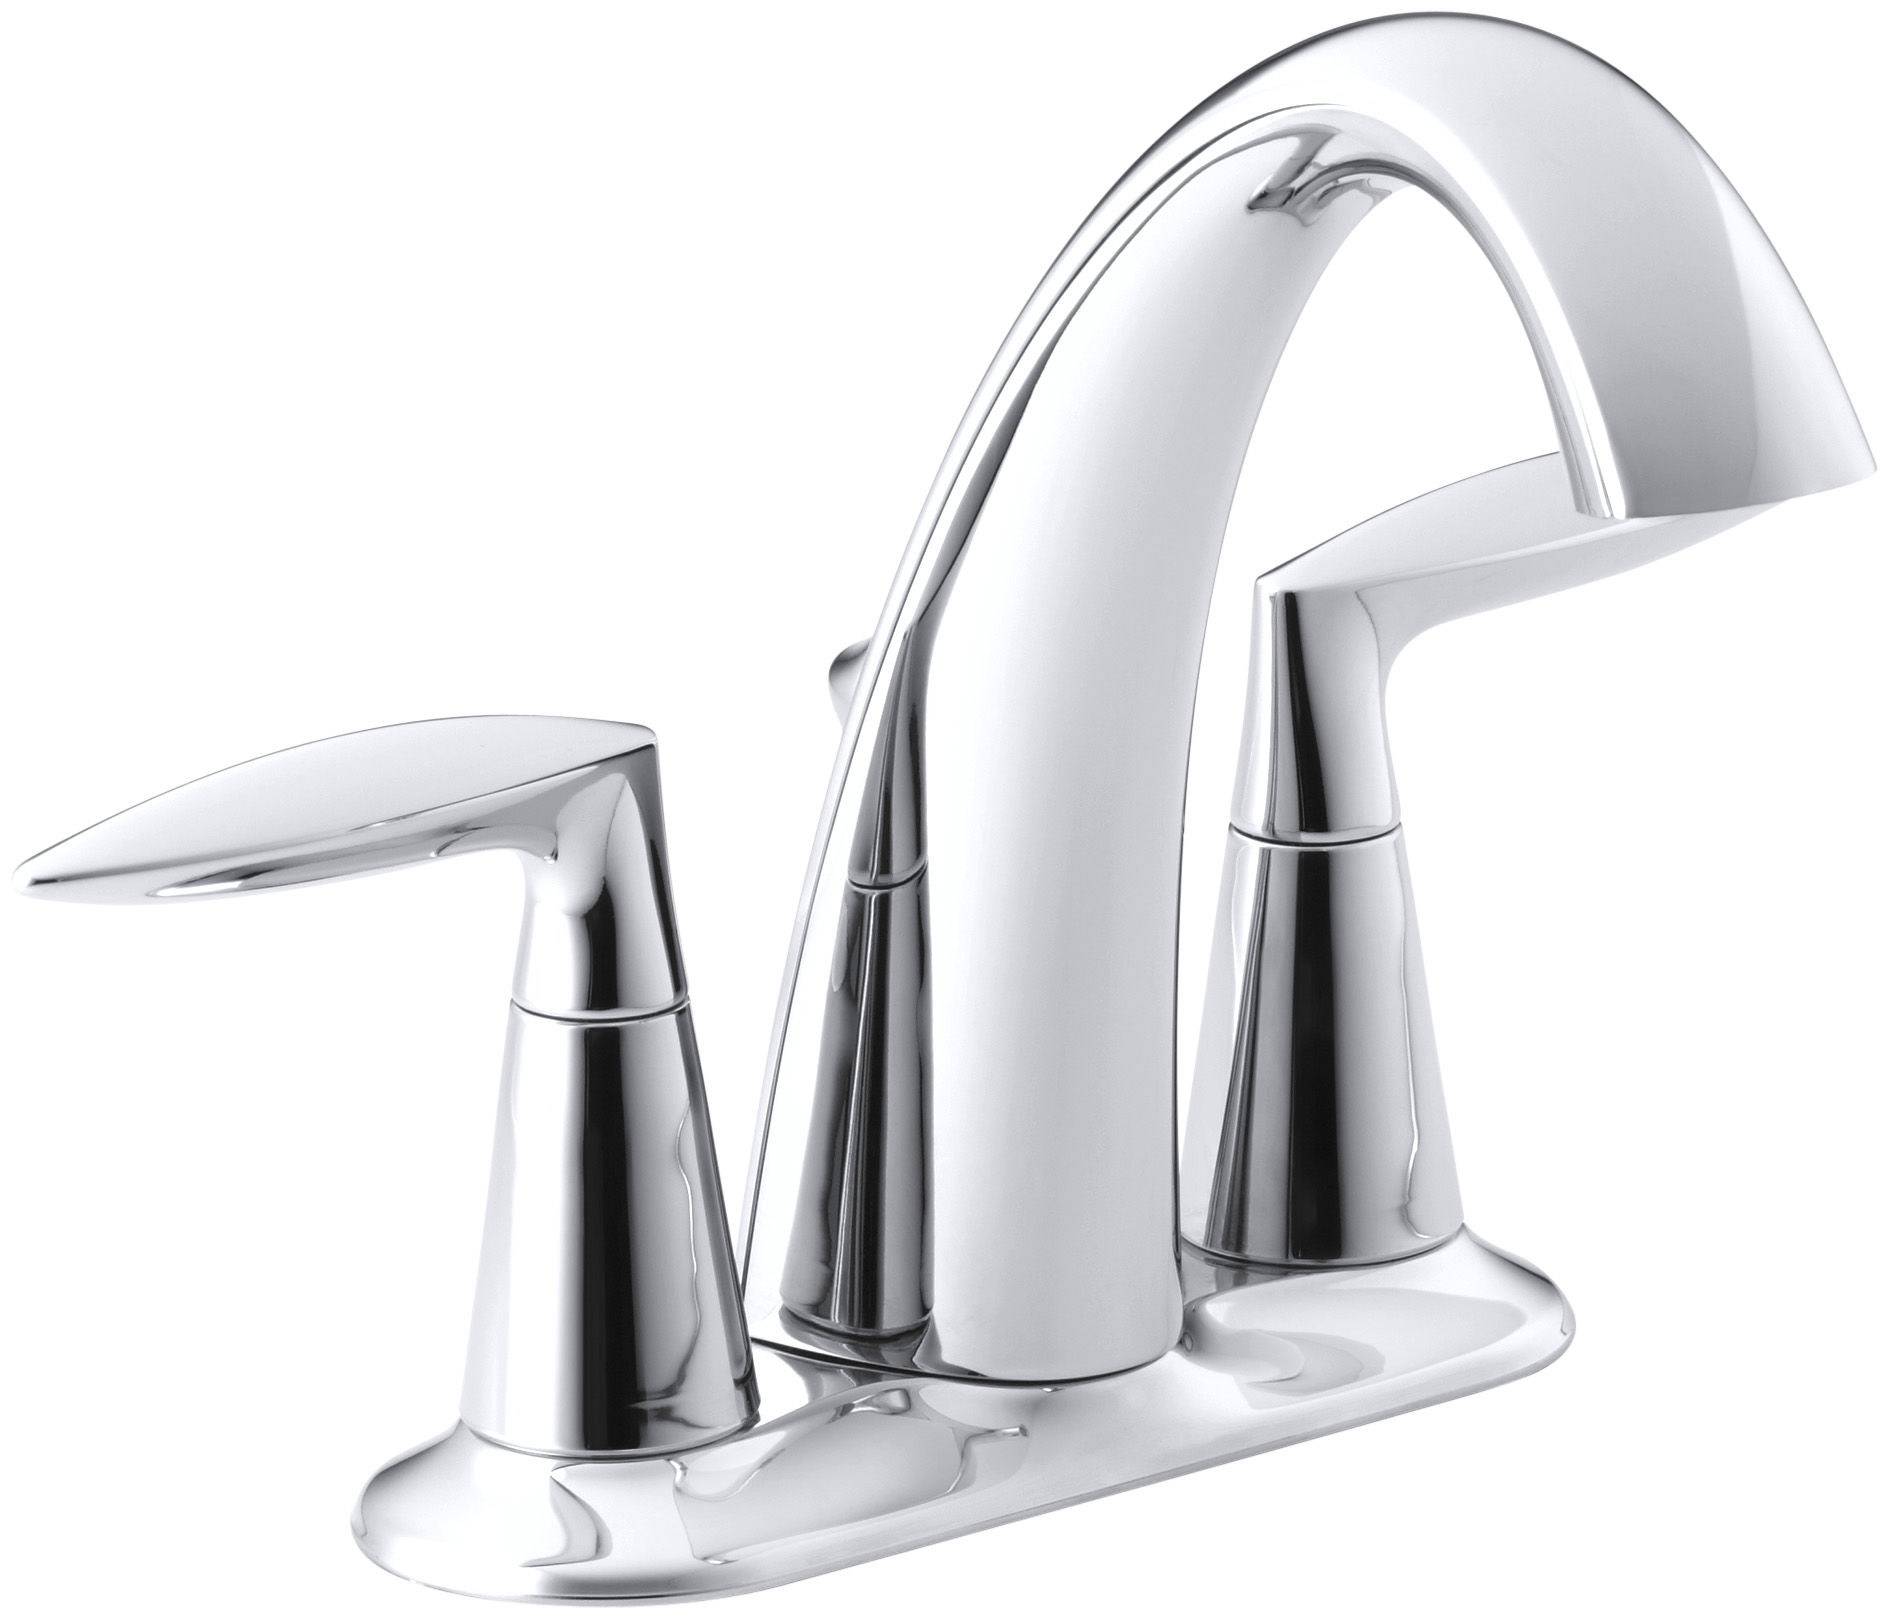 Kohler K-45100-4-CP Polished Chrome Alteo Centerset Bathroom Faucet ...